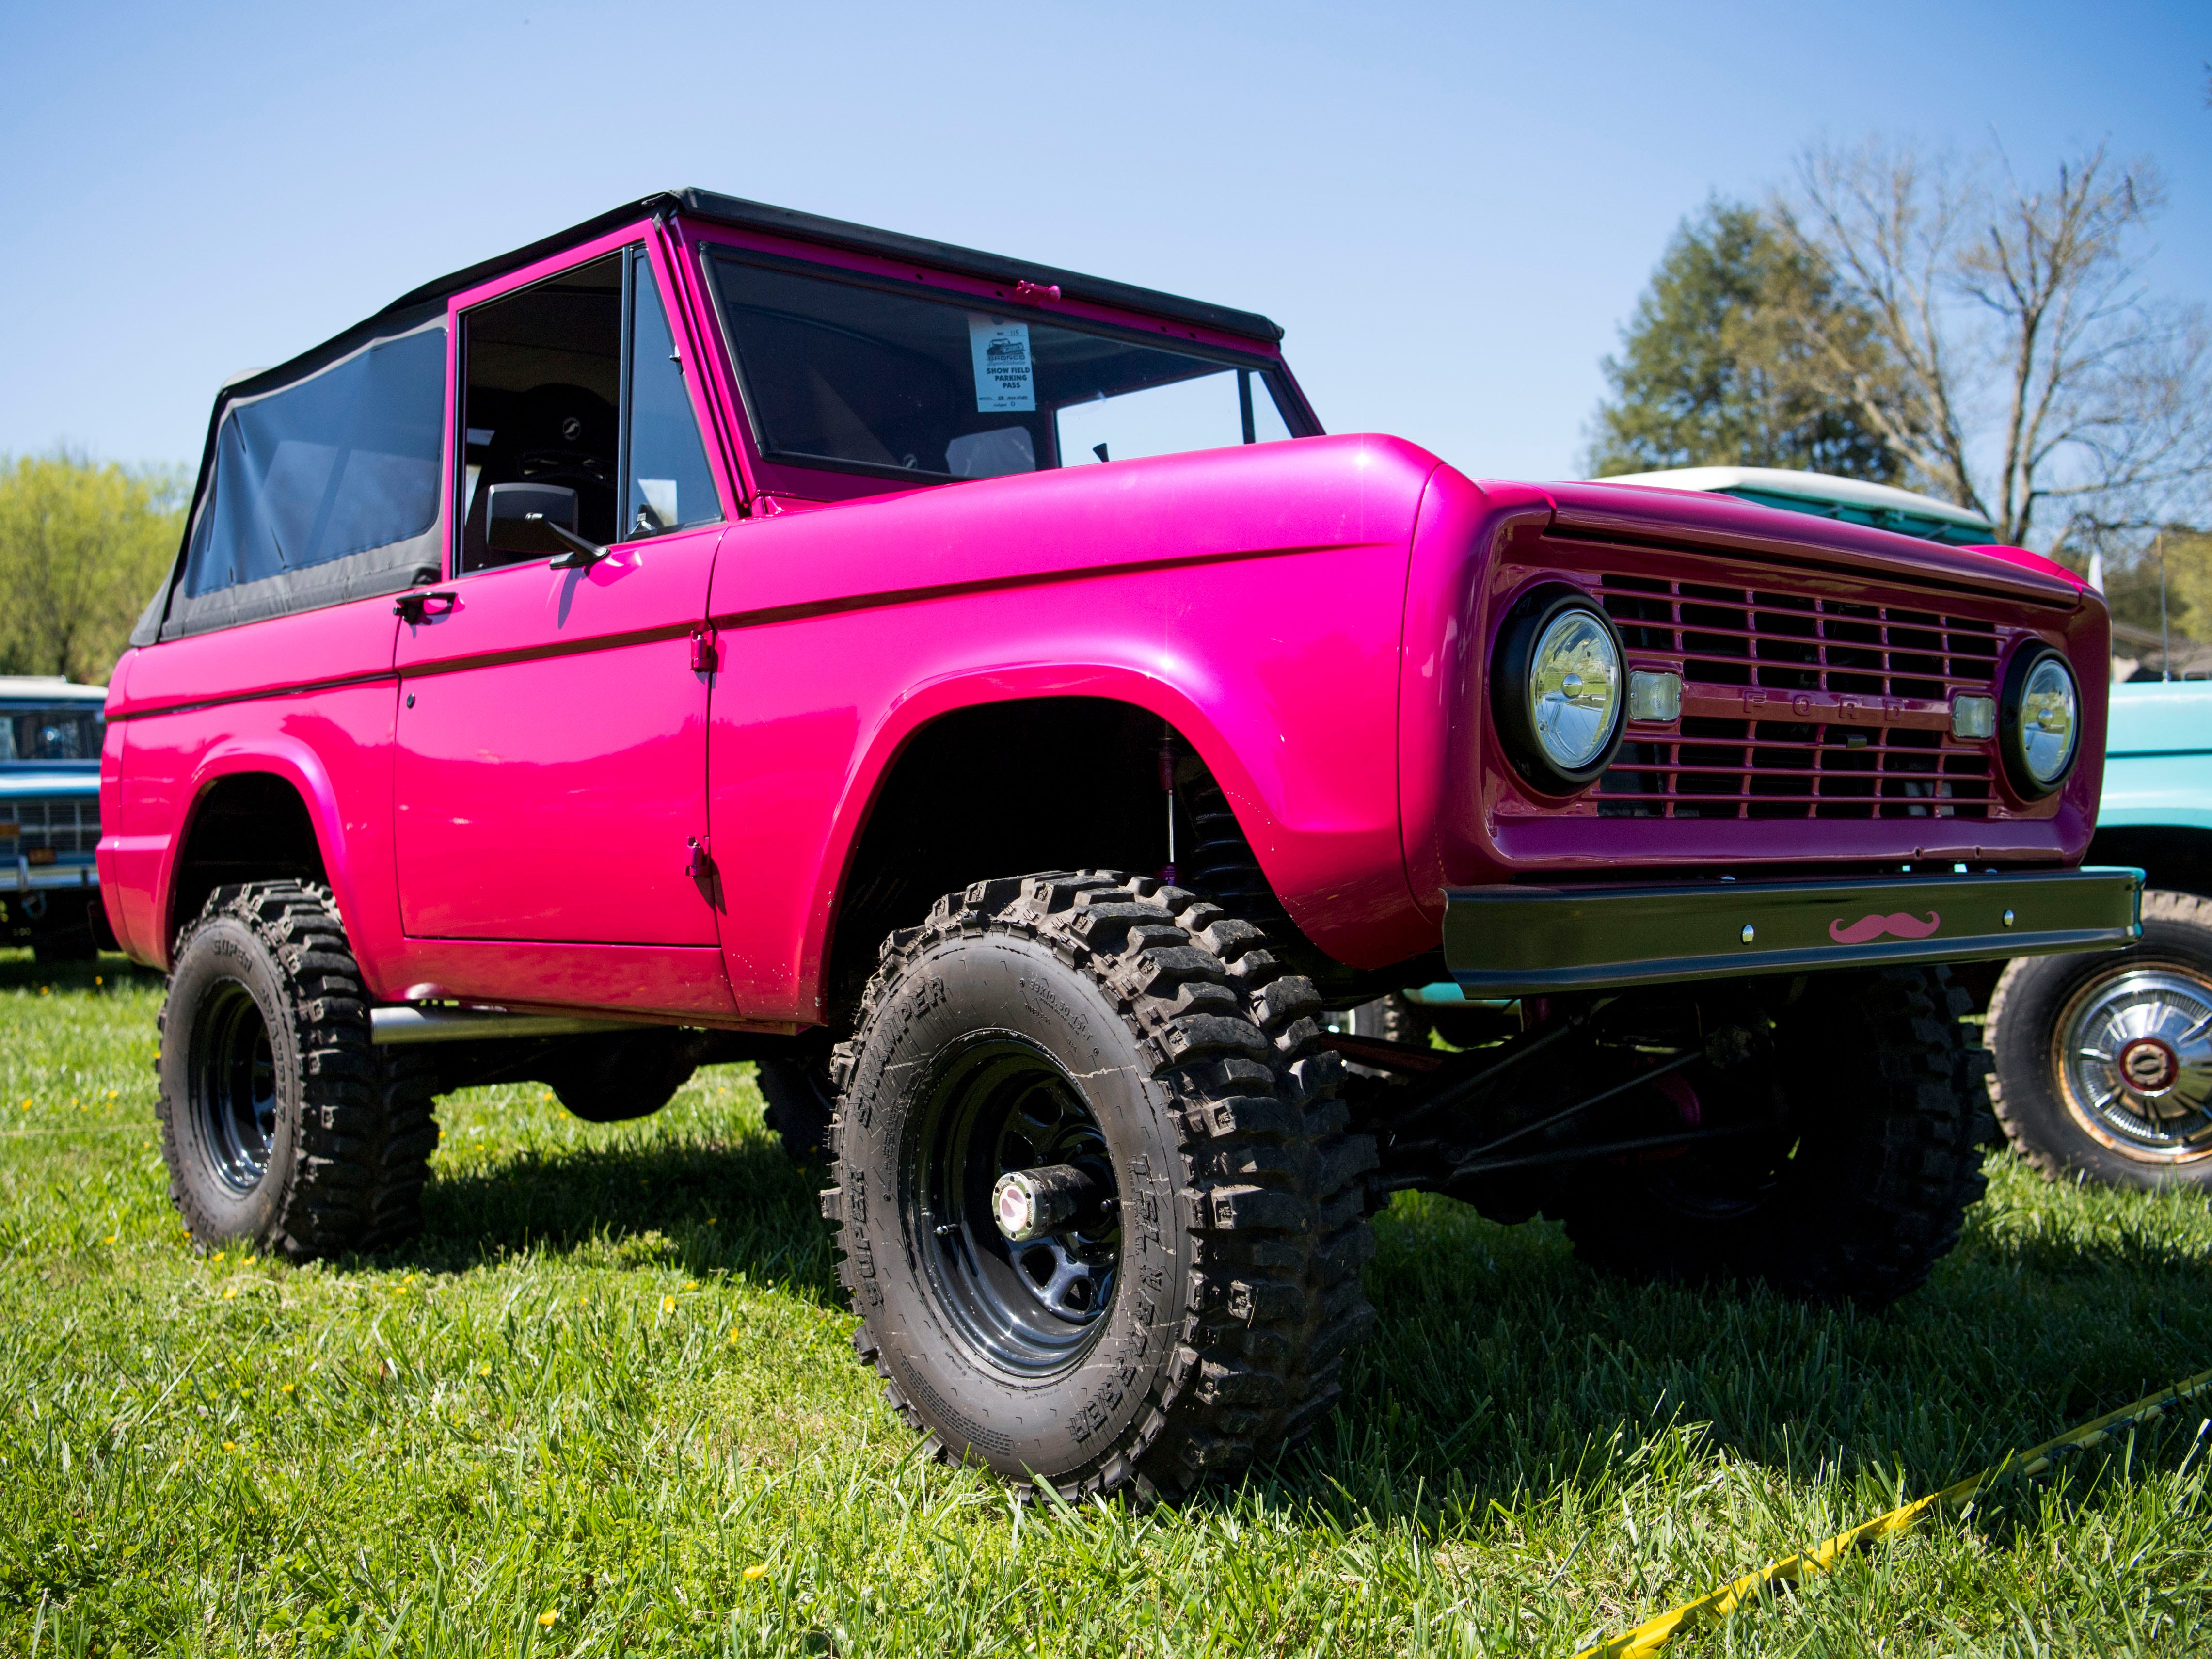 A Ford Bronco on display at the Bronco Super Celebration event held at Tally Ho Inn in Townsend, Tenn. Between 500 and 600 Broncos are expected at the event, which will run from April 10, 2019, to April 13, 2019.